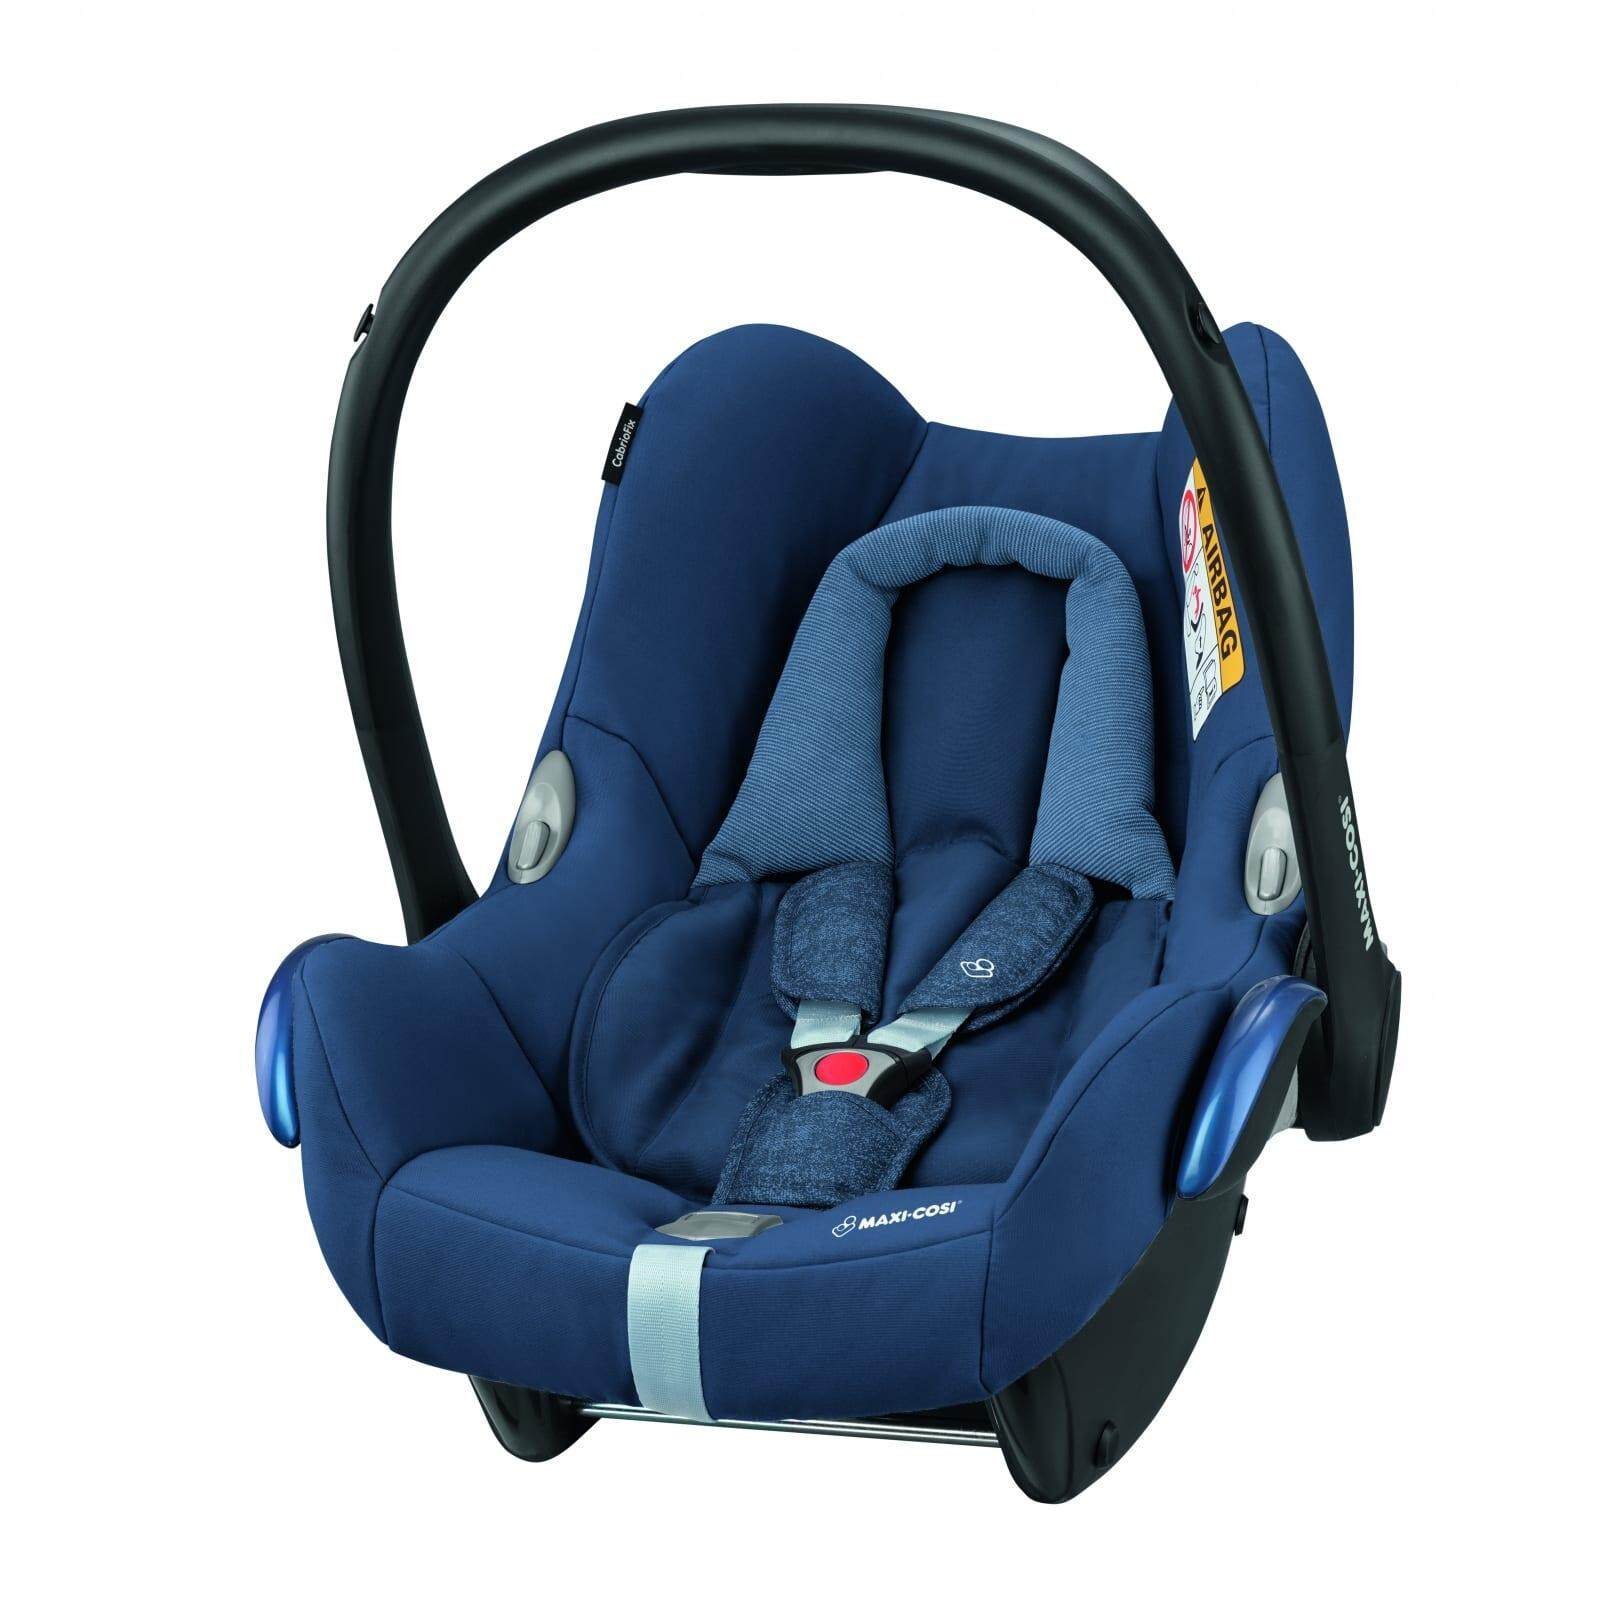 Quinny Products for the Best Prices in Malaysia